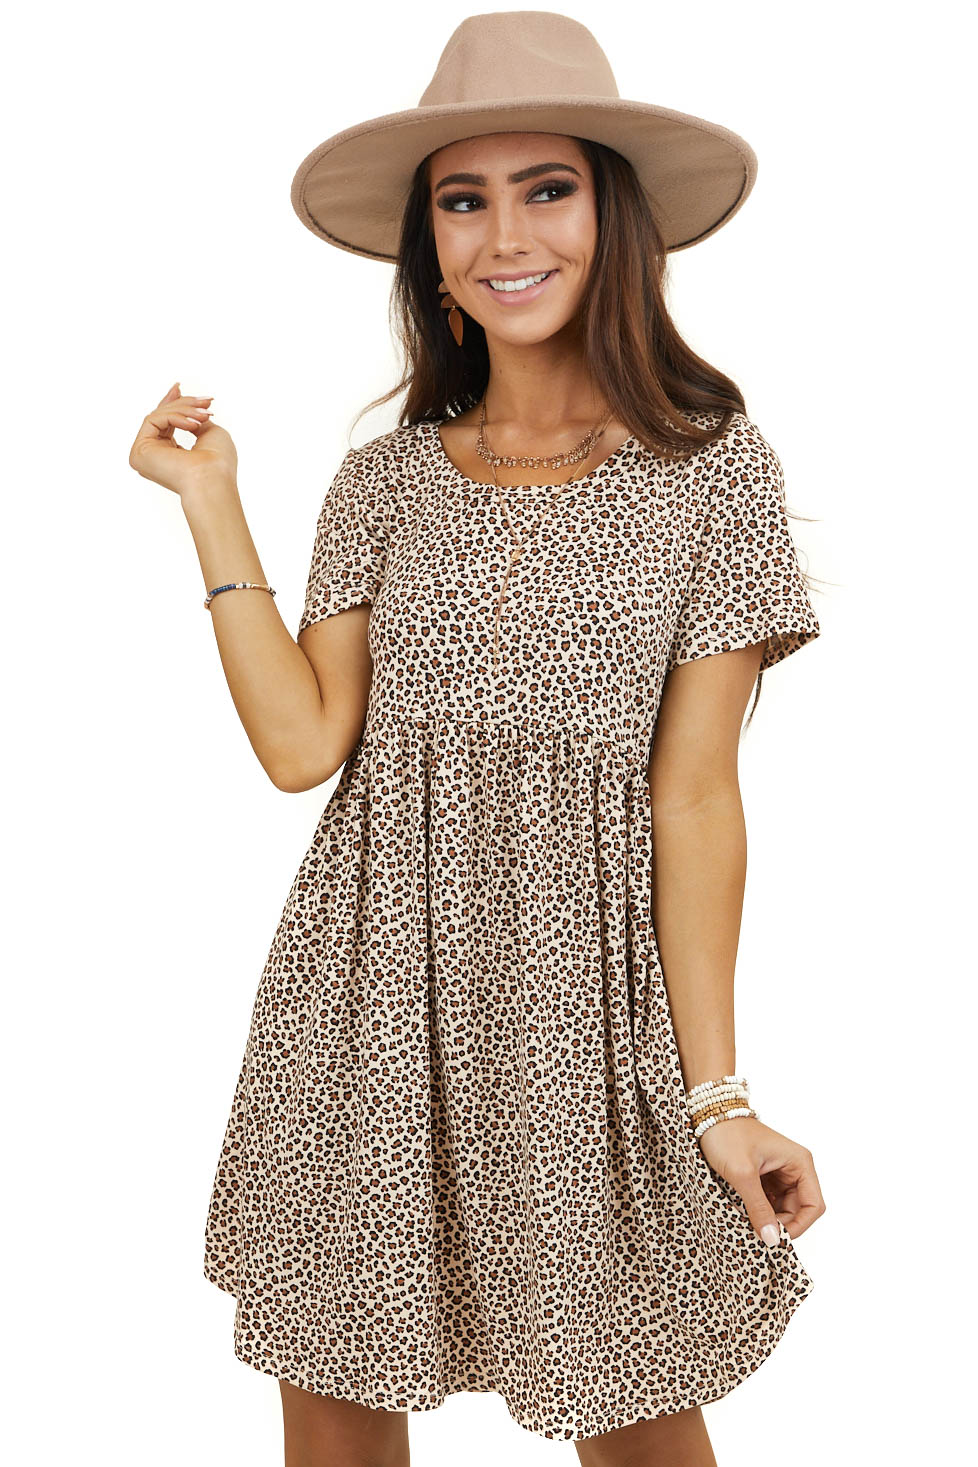 Cream and Black Leopard Print Soft Tiered Baby Doll Dress